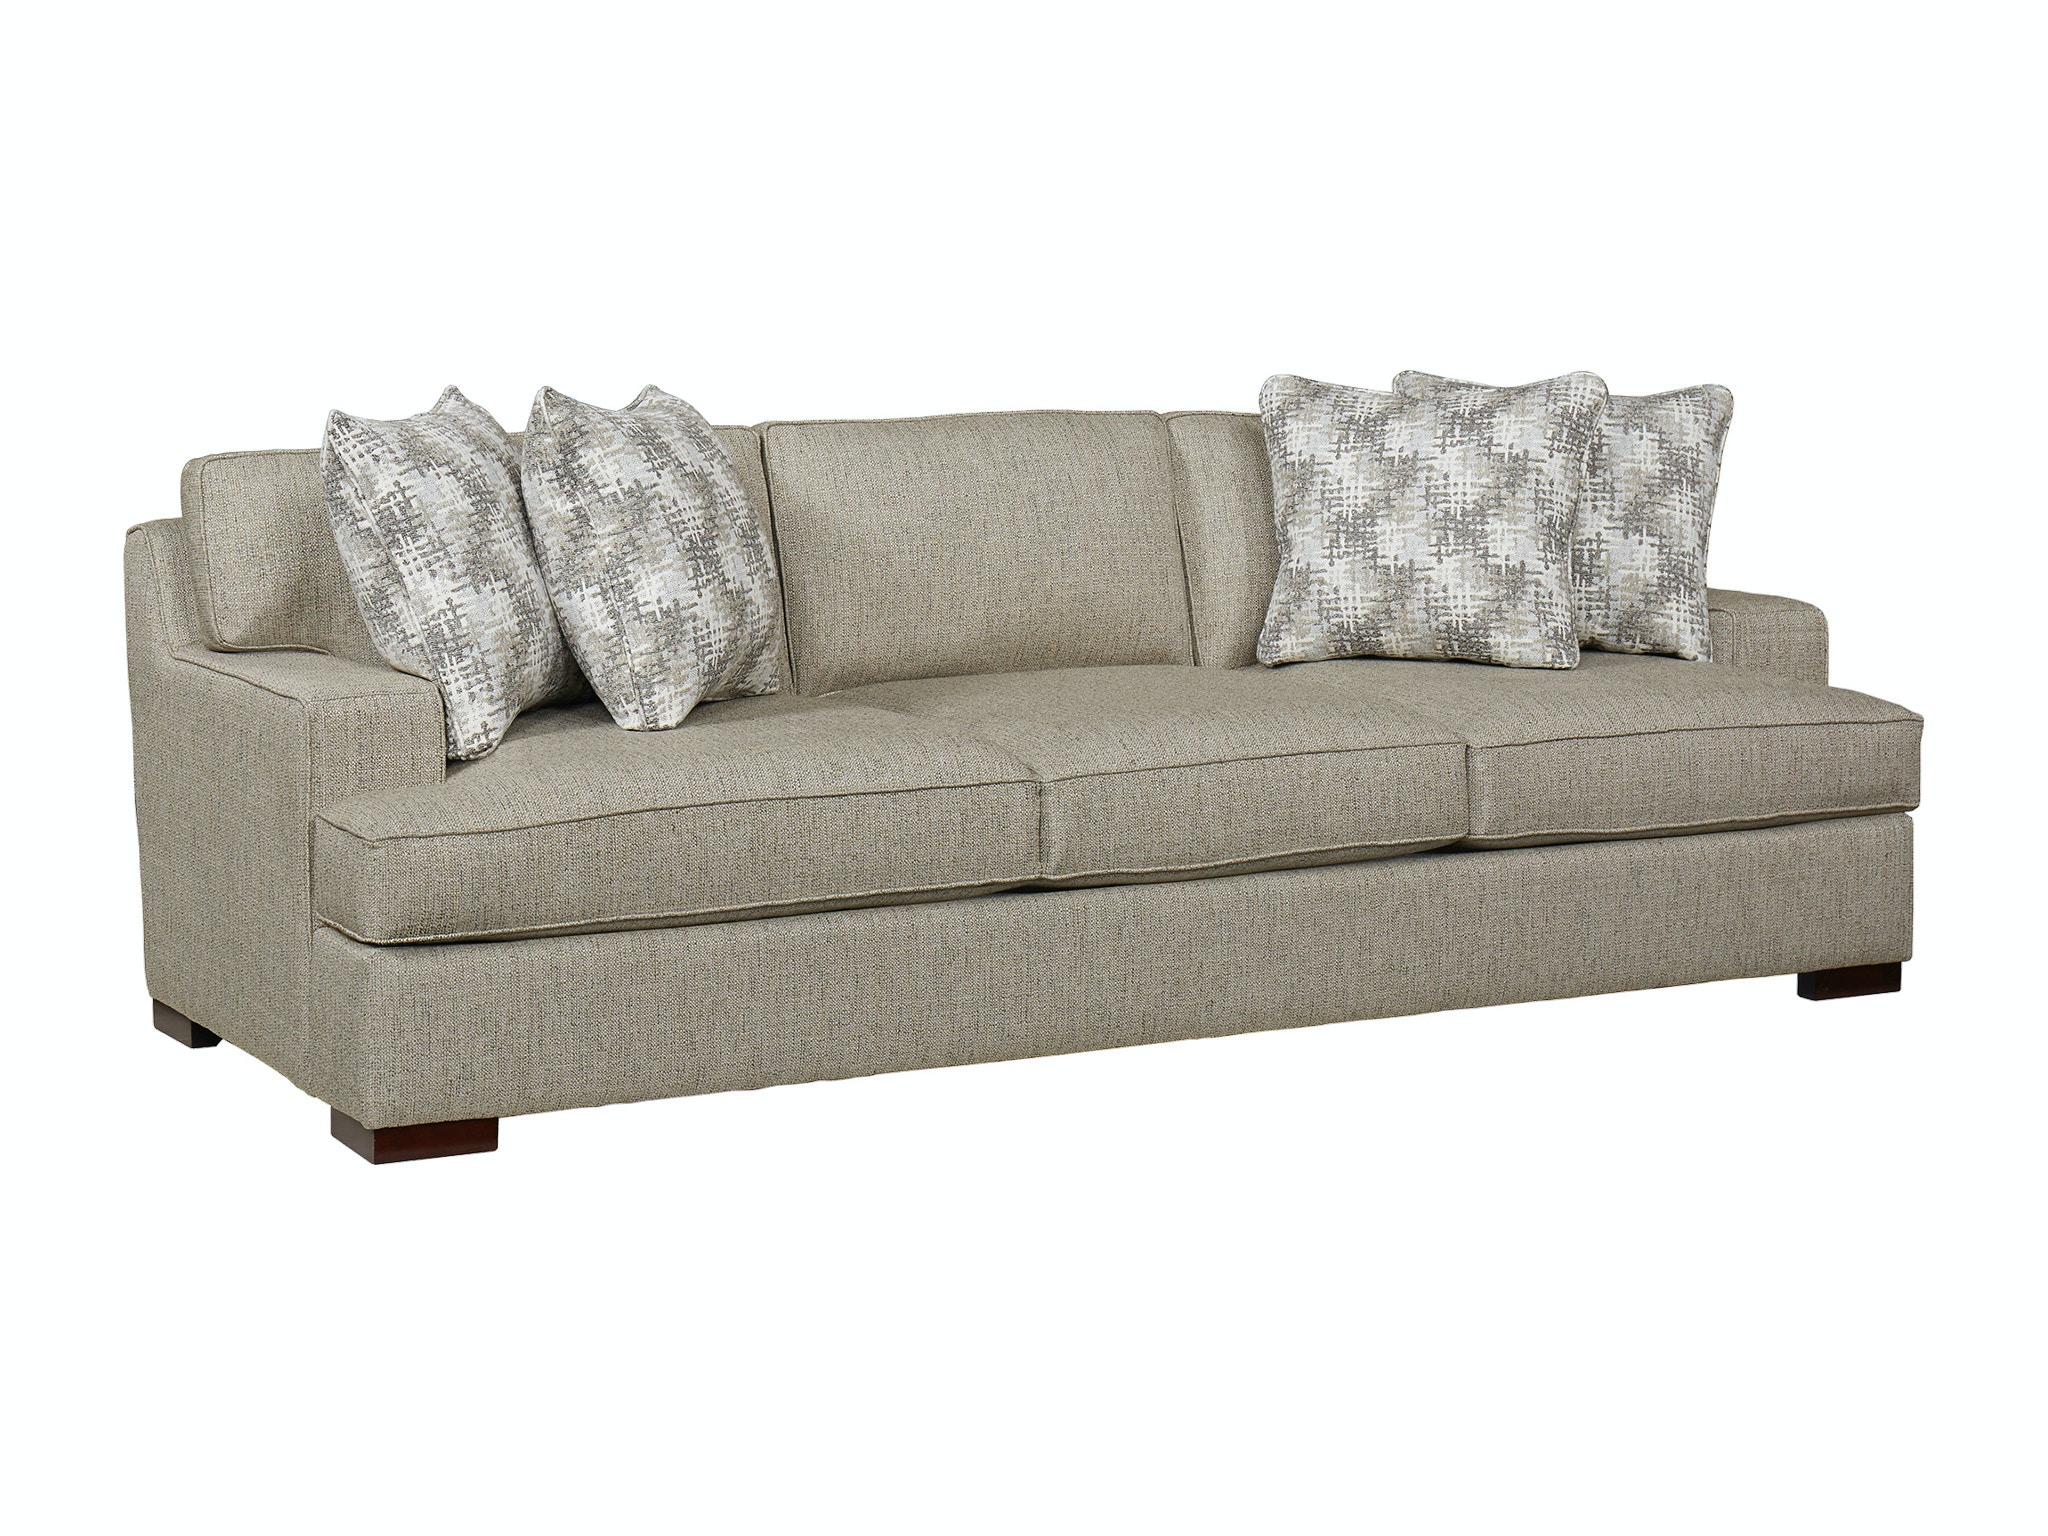 Havertys Reese Sofa   102 Inch